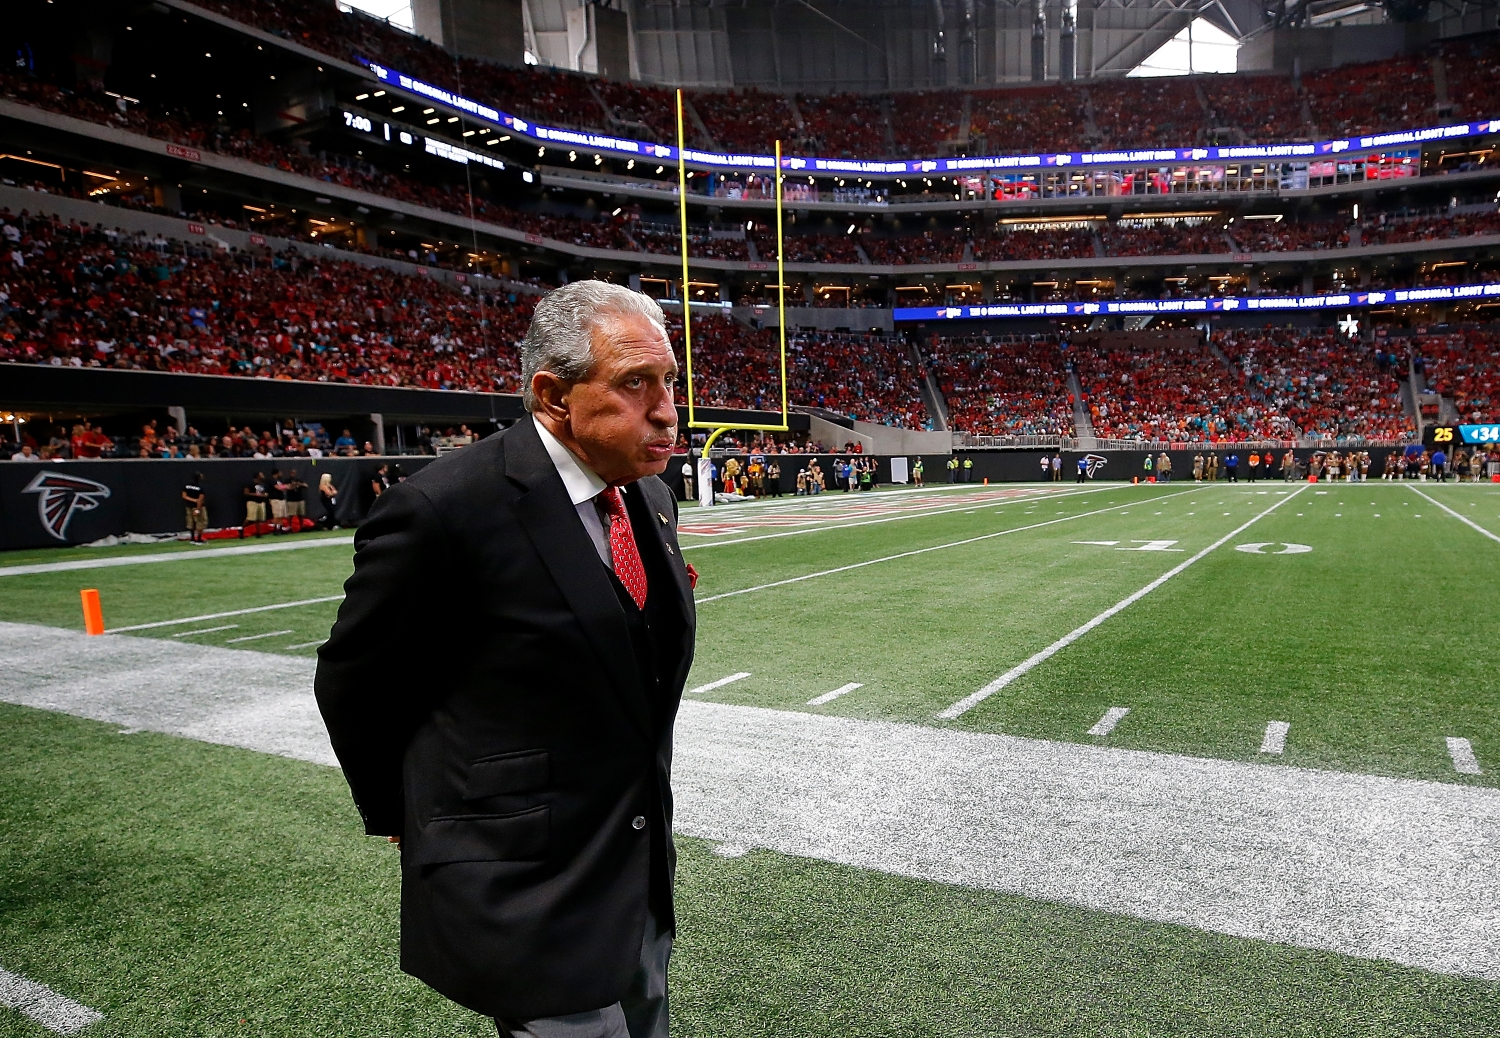 Atlanta Falcons owner Arthur Blank walks the sidelines during a game against the Miami Dolphins from the 2017 NFL season.